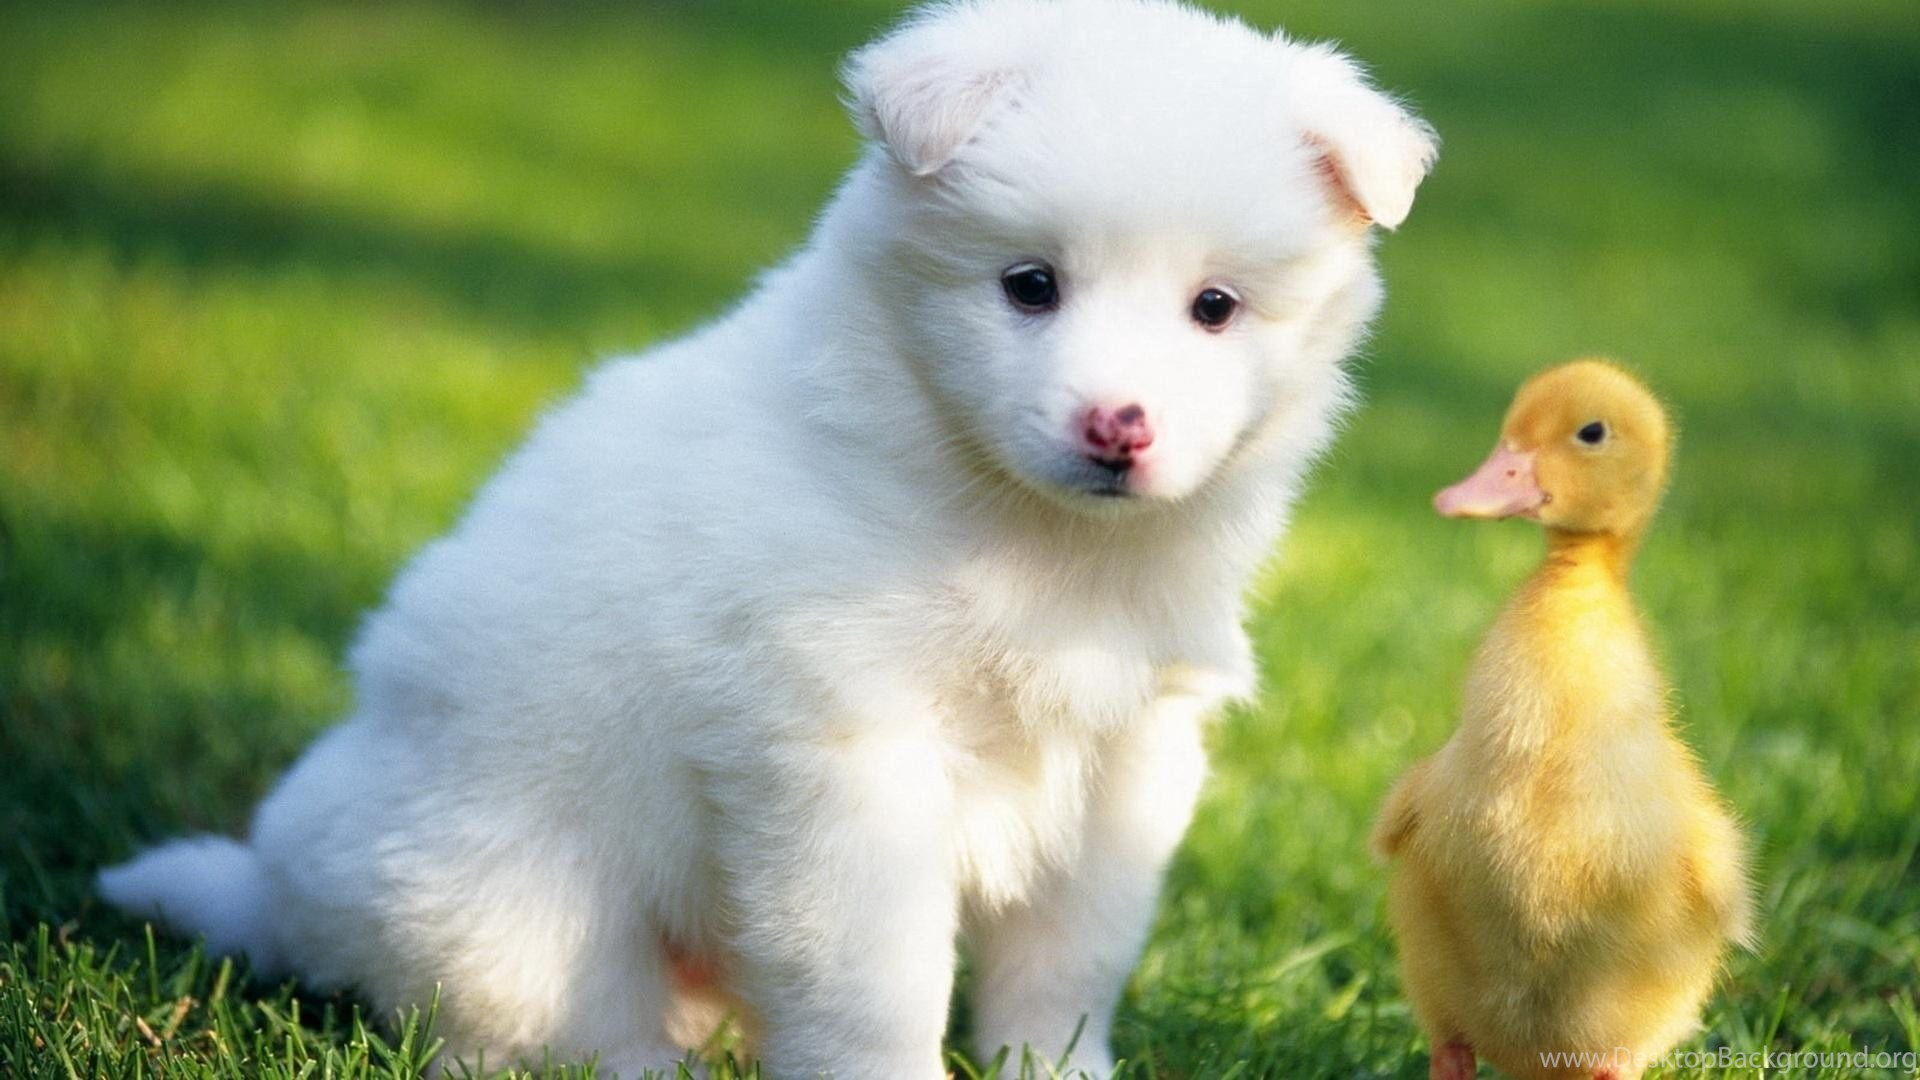 White Puppies The Cutest Backgrounds With Cute High Quality For rh